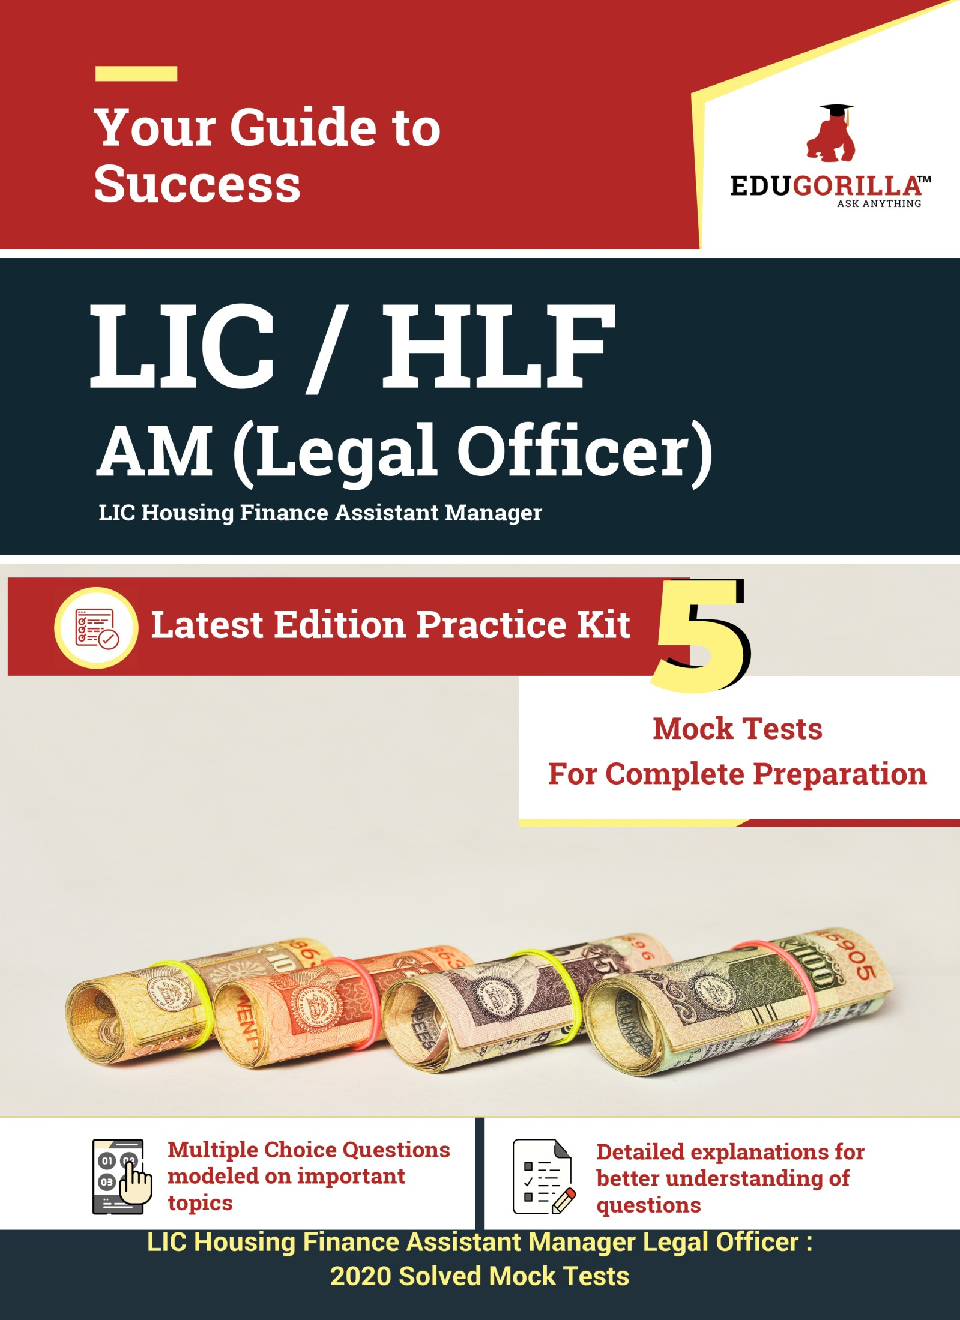 EduGorilla LIC Housing Finance Assistant Manager (Legal Officer) 2020  - 5 Mock Tests For Complete Preparation  - Page 1